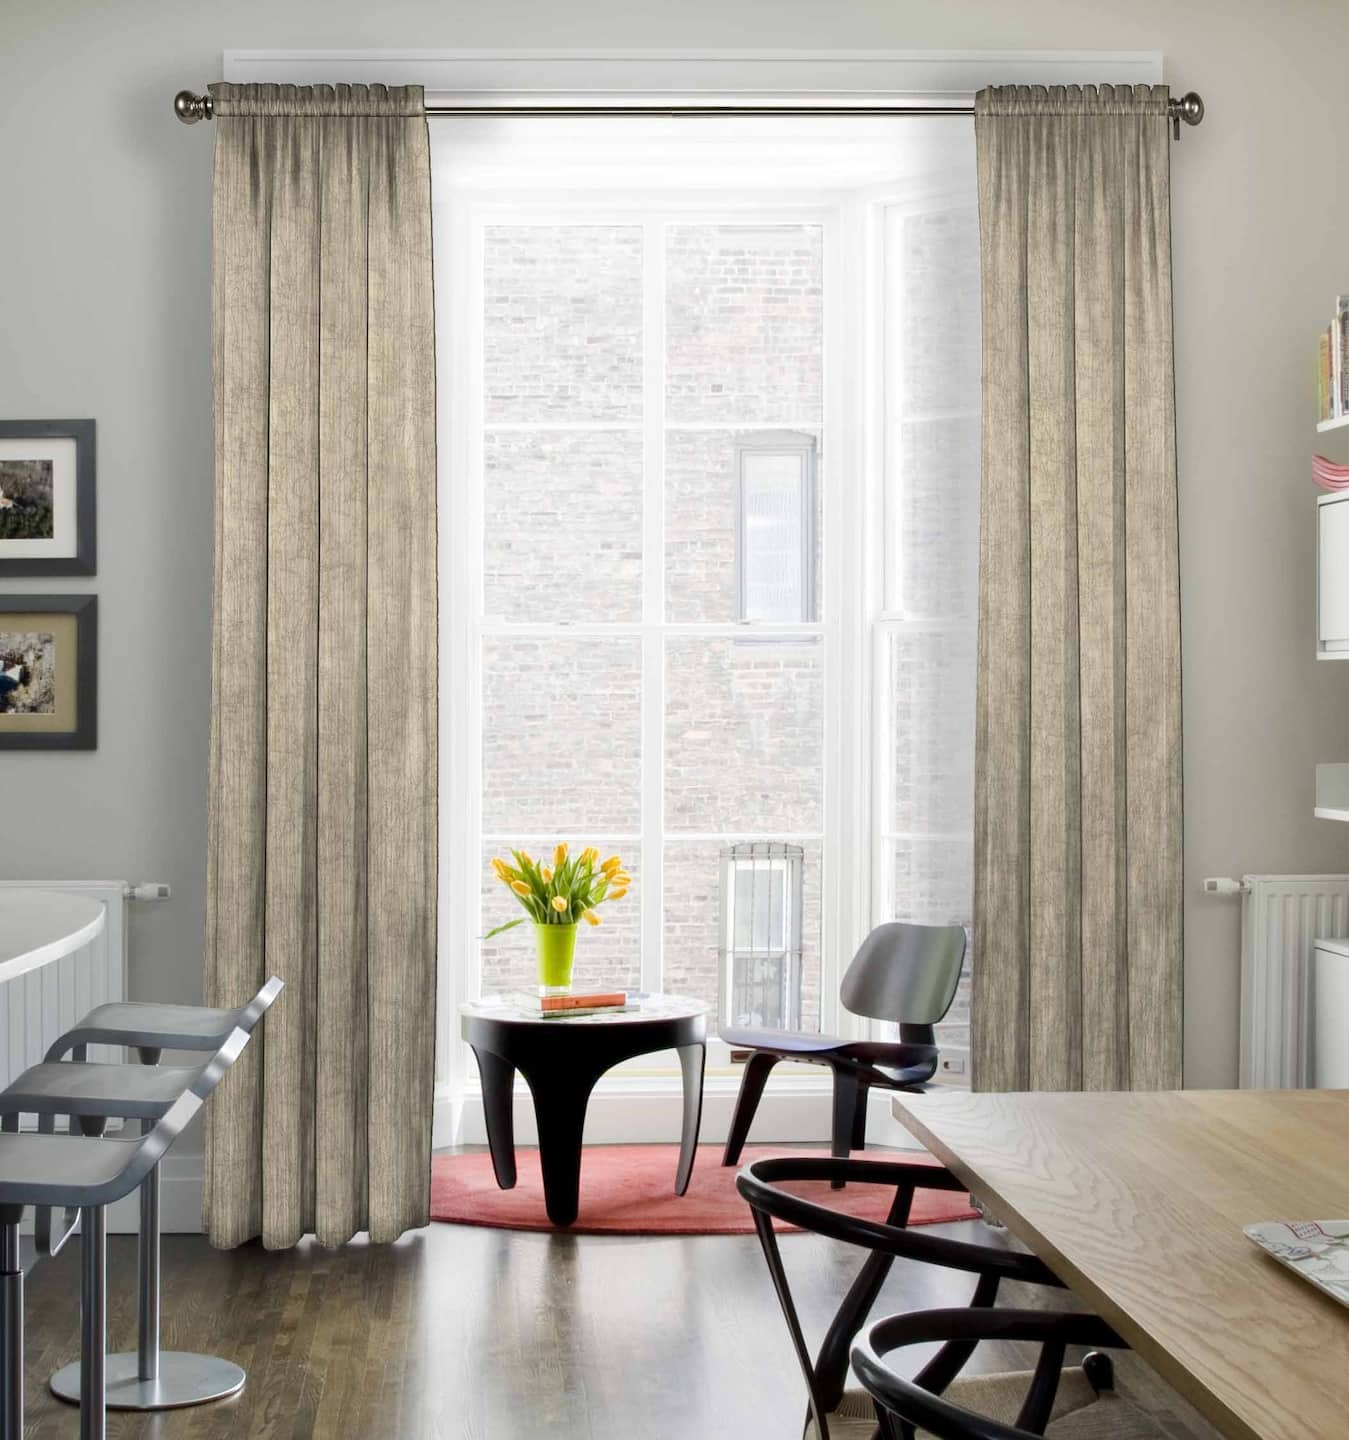 Genial Modern Dining Room With Off White Curtains In A Subtle Pattern, Framing A  Tall